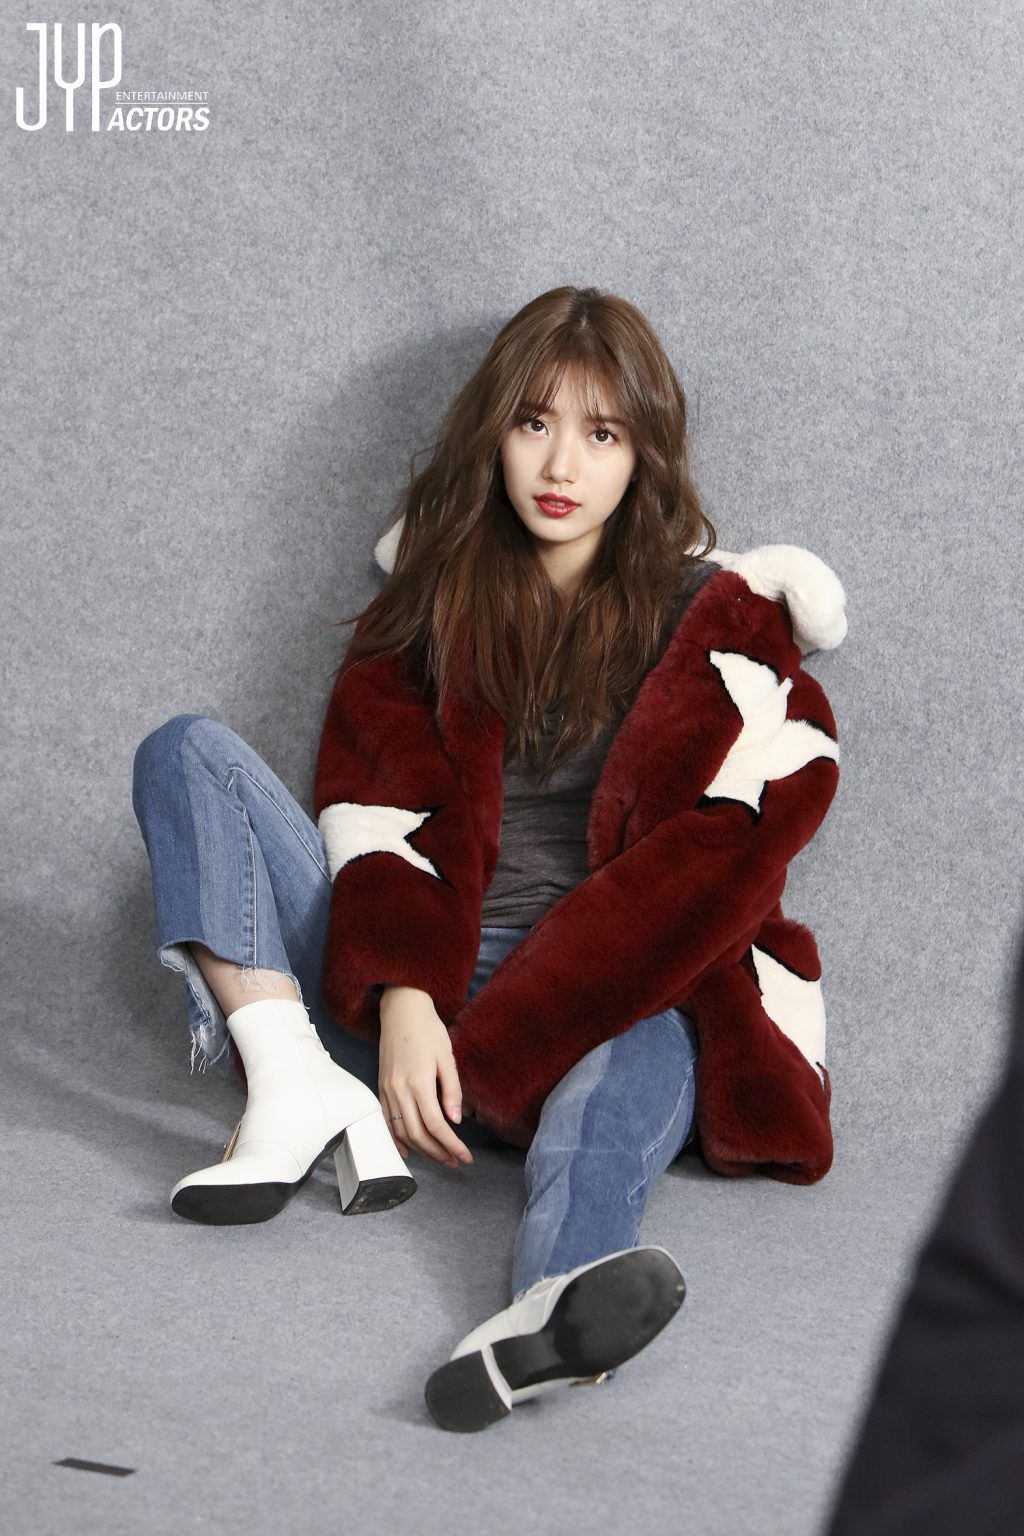 suzy-guess